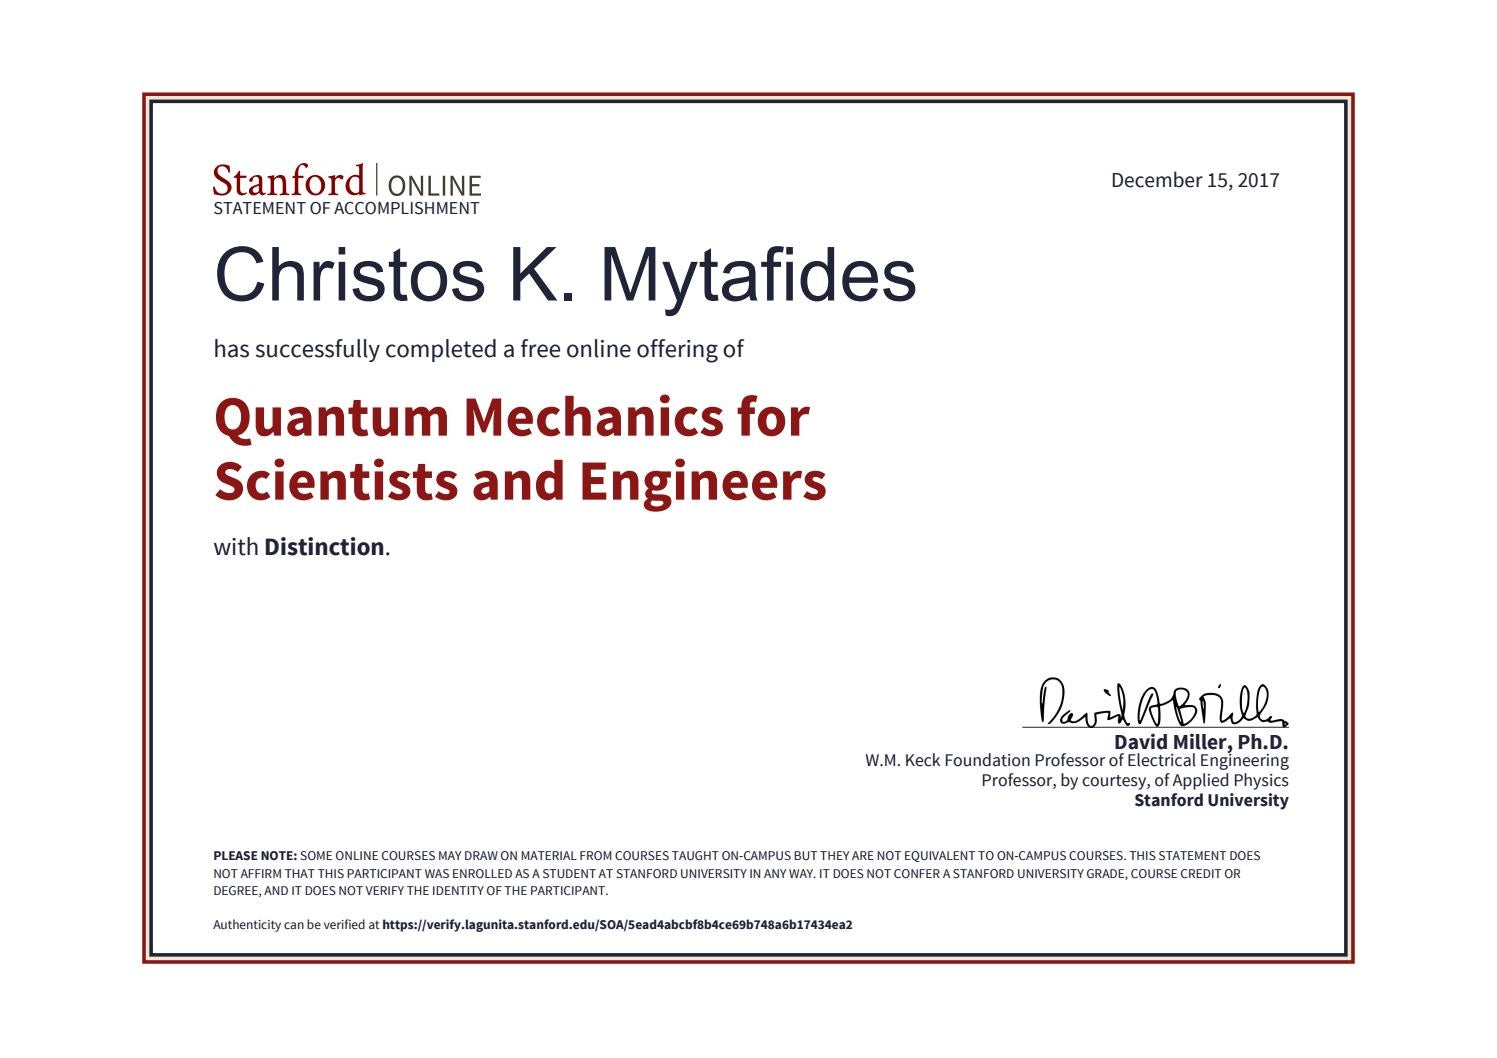 Quantum Mechanics for Scientists & Engineers by Christos K